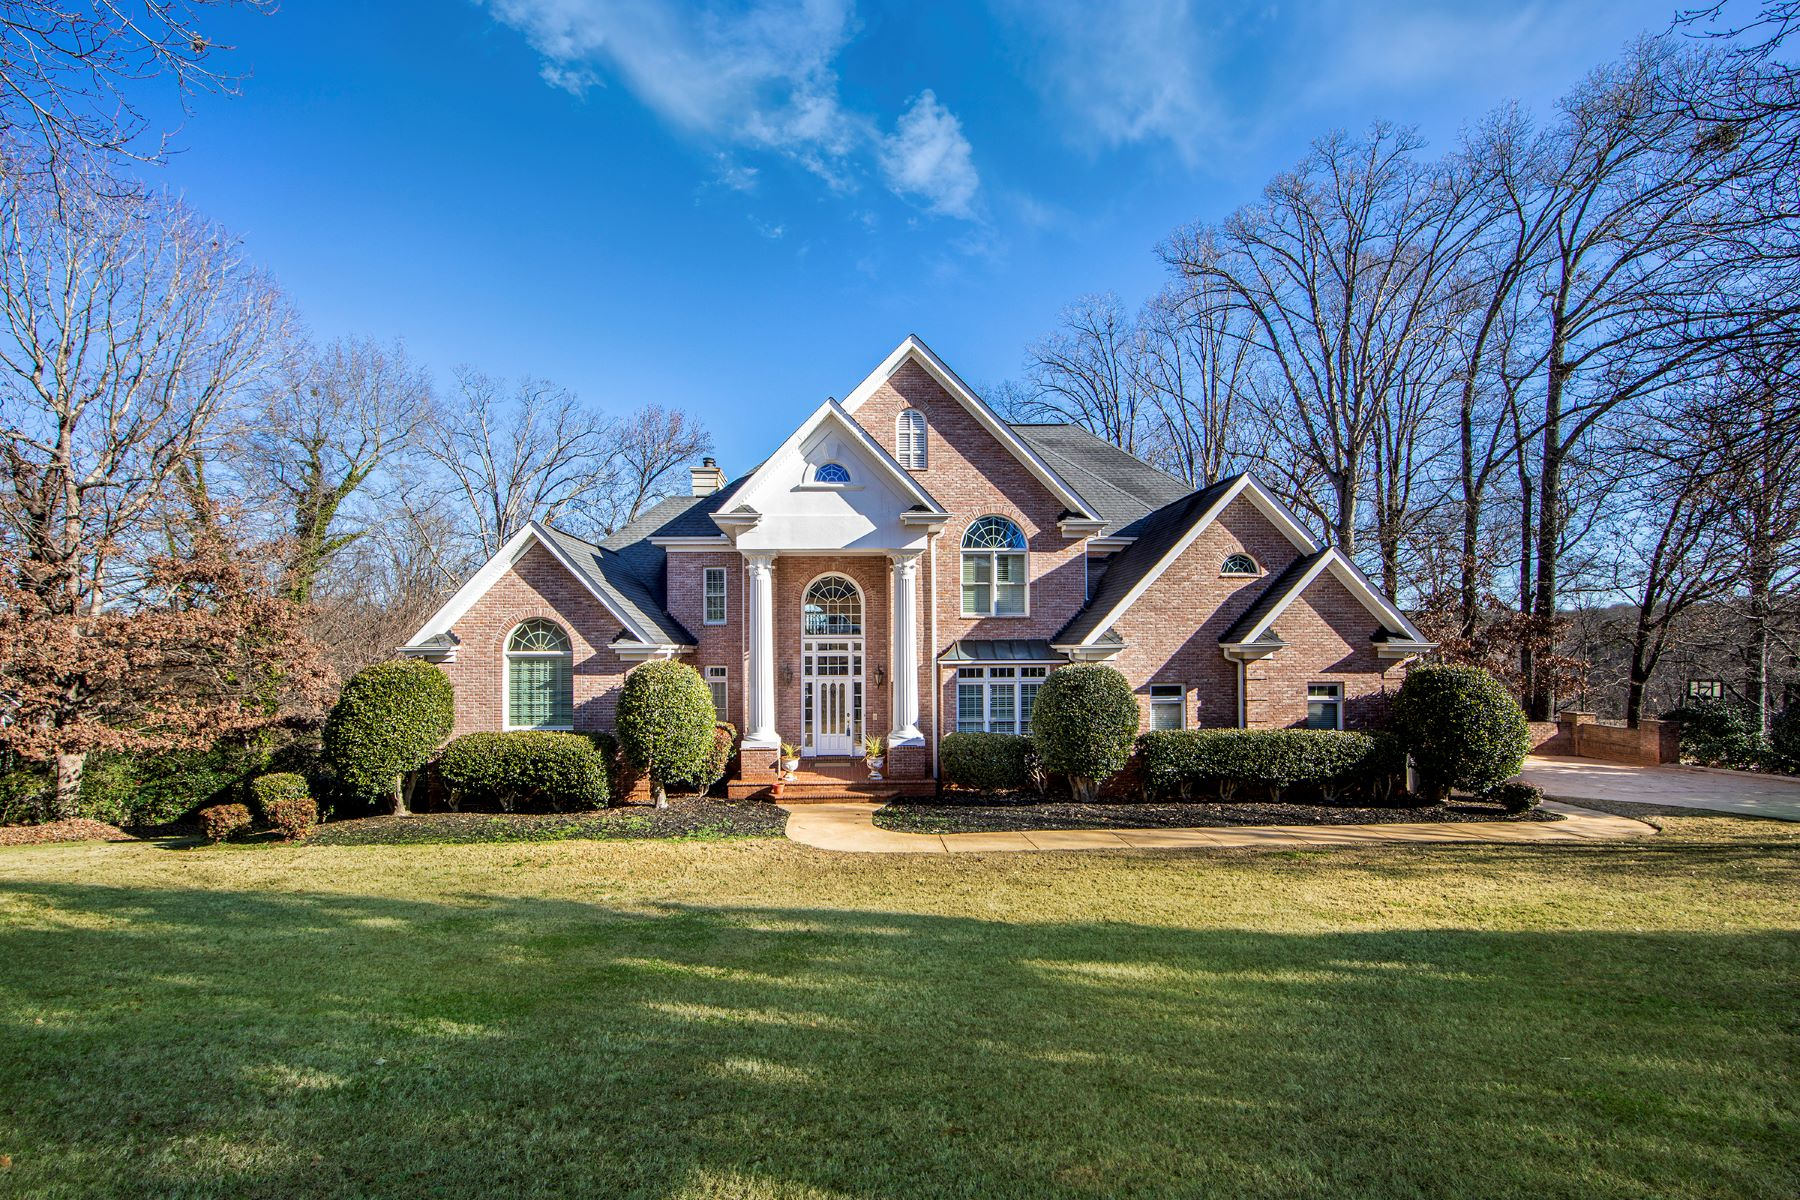 Single Family Homes for Active at Warm and inviting home on waterfront lot. 515 Spaulding Lake Drive Greenville, South Carolina 29615 United States